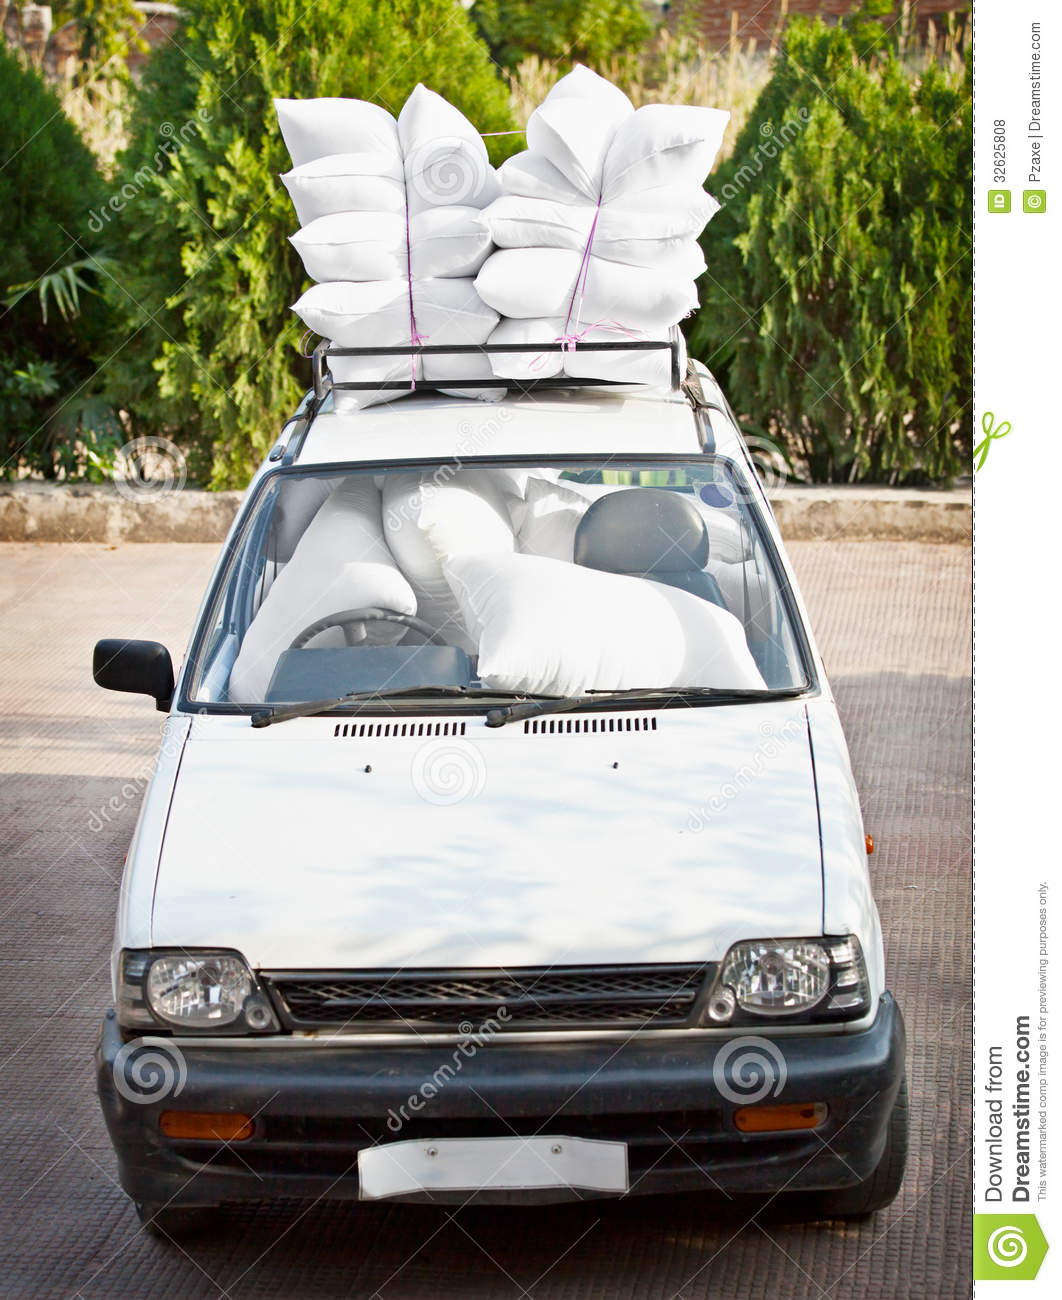 Auto Good Image: Old Car, Good Staffing Of Airbags. Joke. Royalty Free